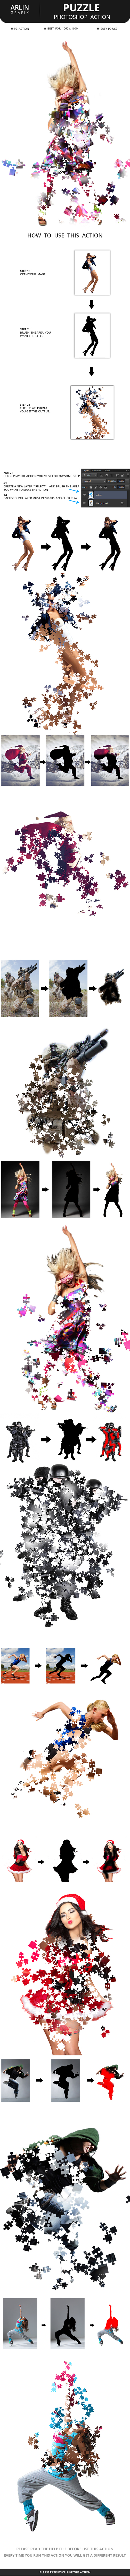 Puzzle Photoshop Action - Photo Effects Actions